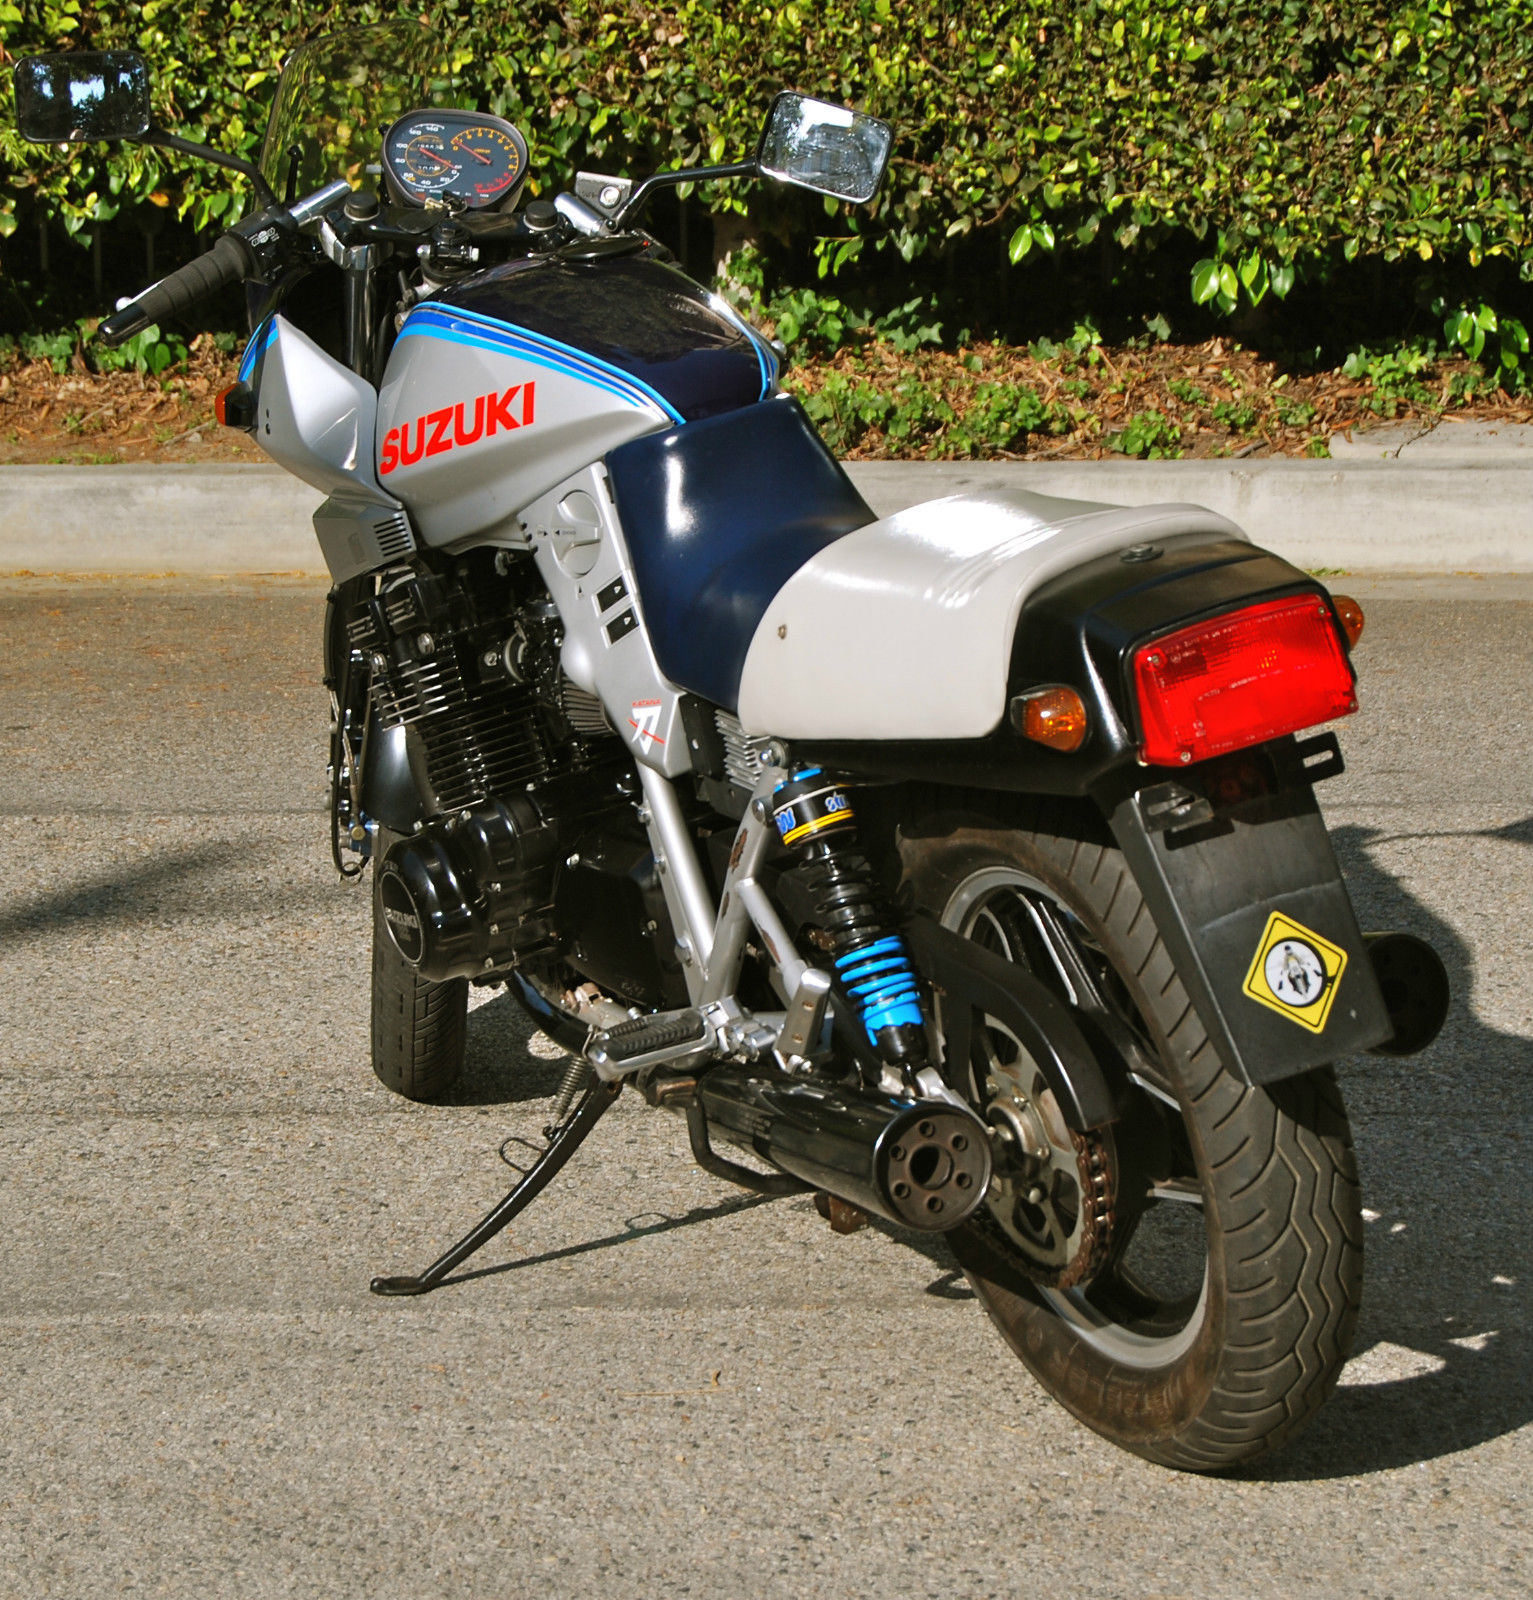 1983 suzuki katana gsx1100 for sale bike urious. Black Bedroom Furniture Sets. Home Design Ideas